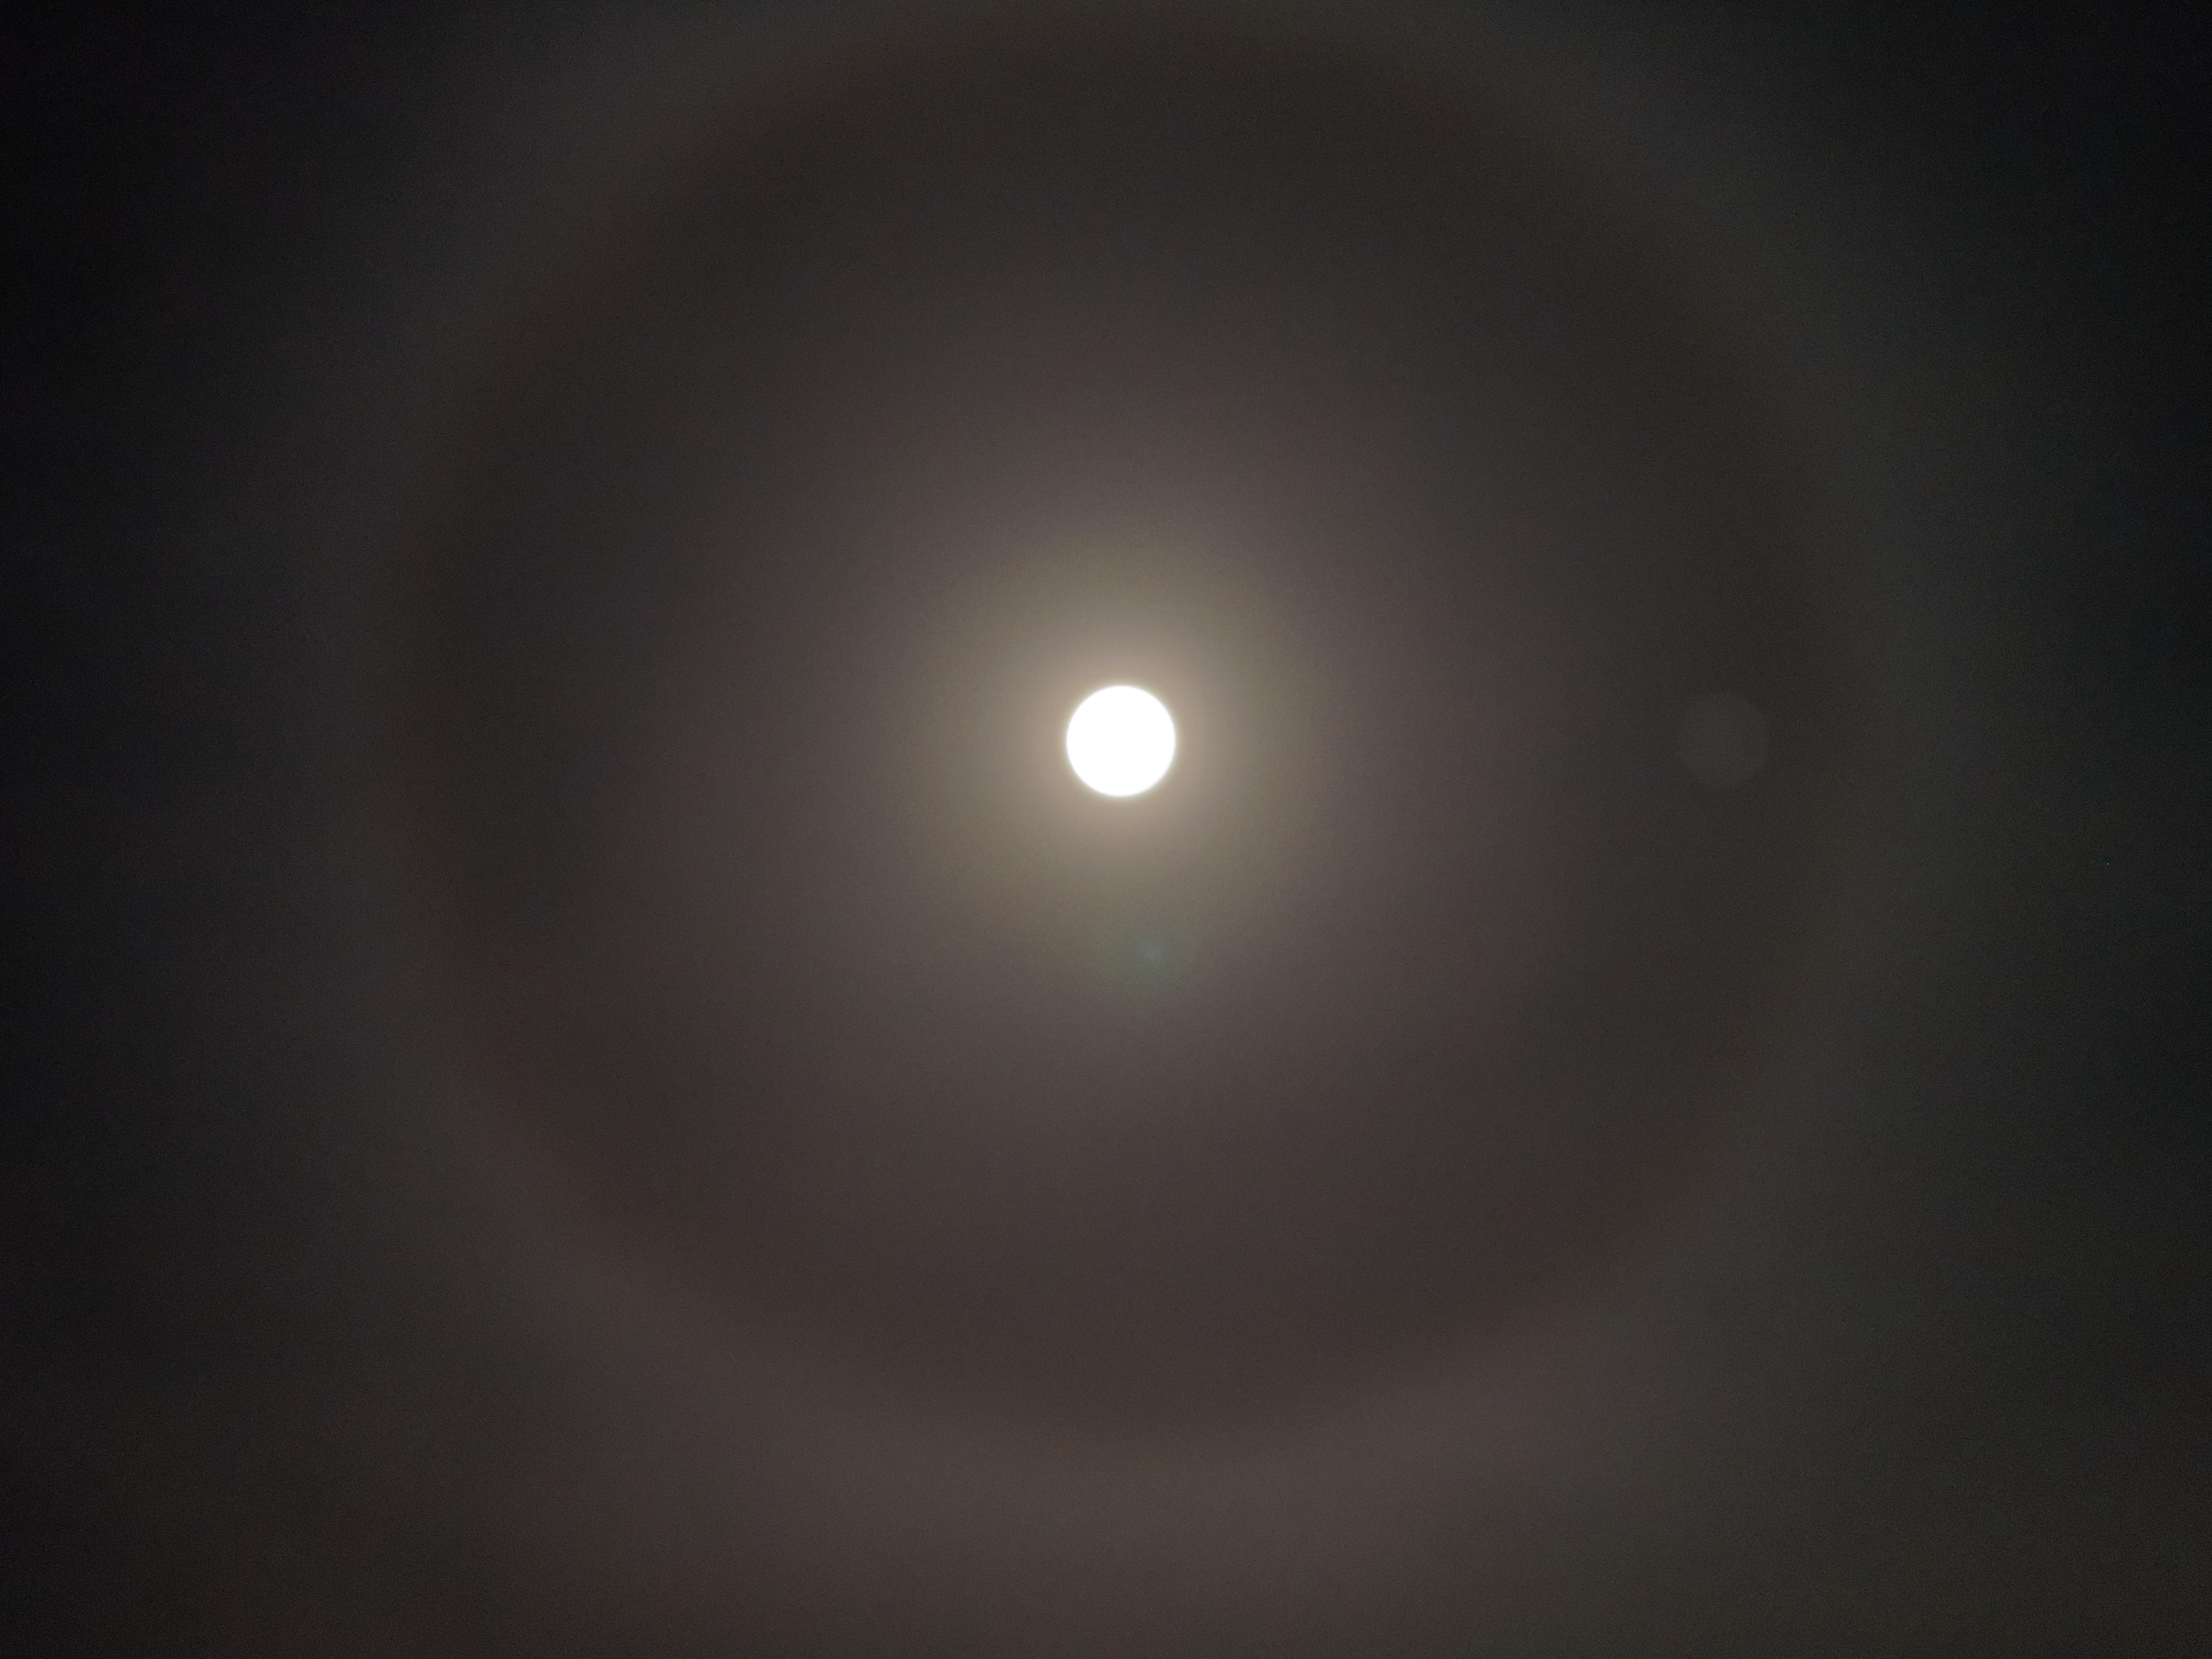 This should be Moon-halo-1.jpeg.  Is it missing?